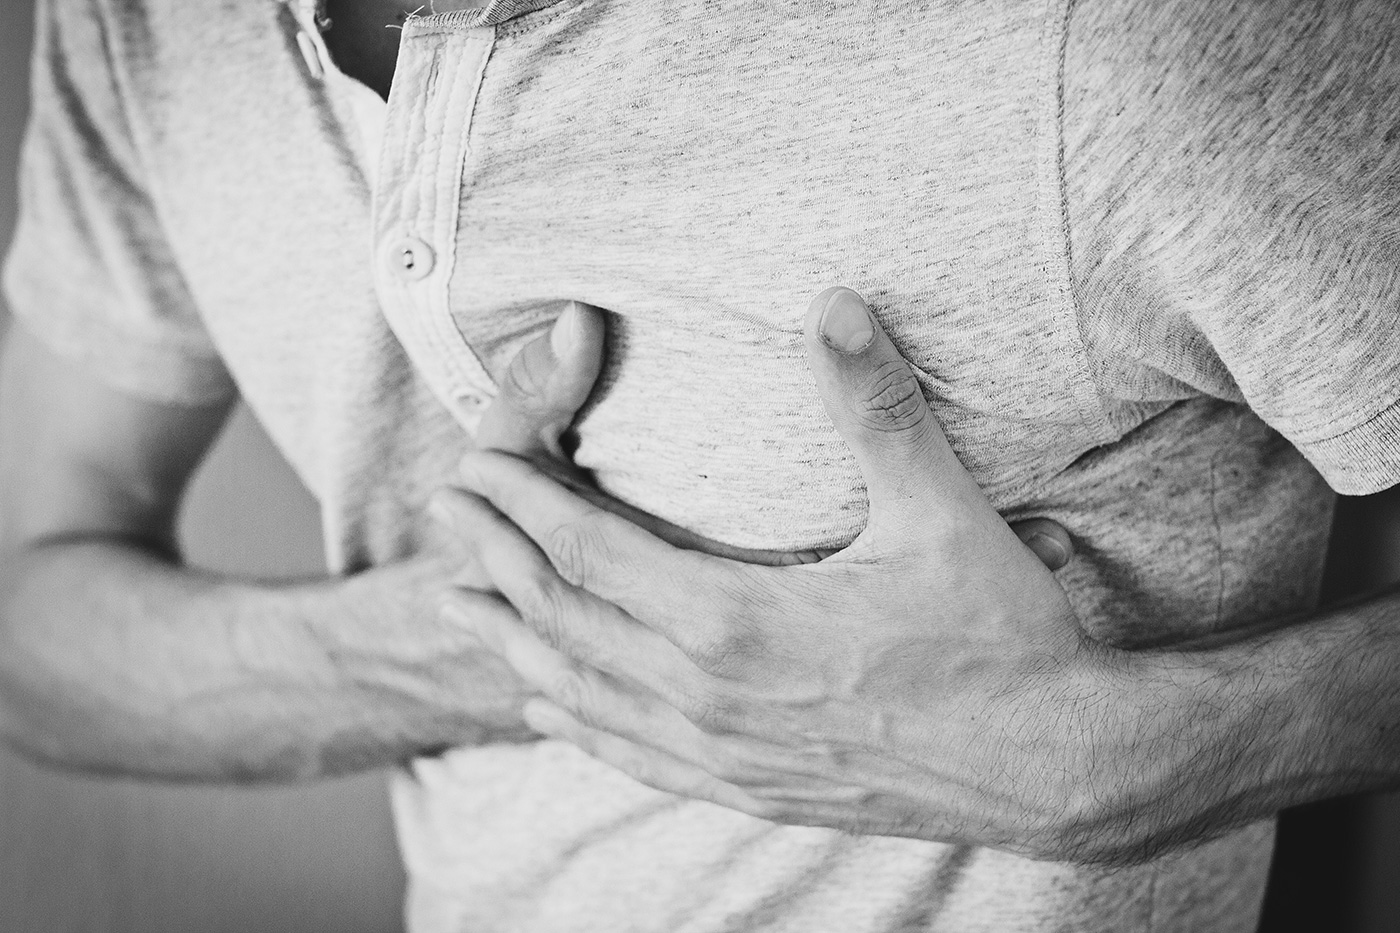 A picture of hands clutching at a person's chest. JOB STRESS HEALTH EFFECTS Job stress can have both short term (e.g. sleep disturbances, difficulty concentrating) and long term (e.g. cardiovascular disease) health effects.